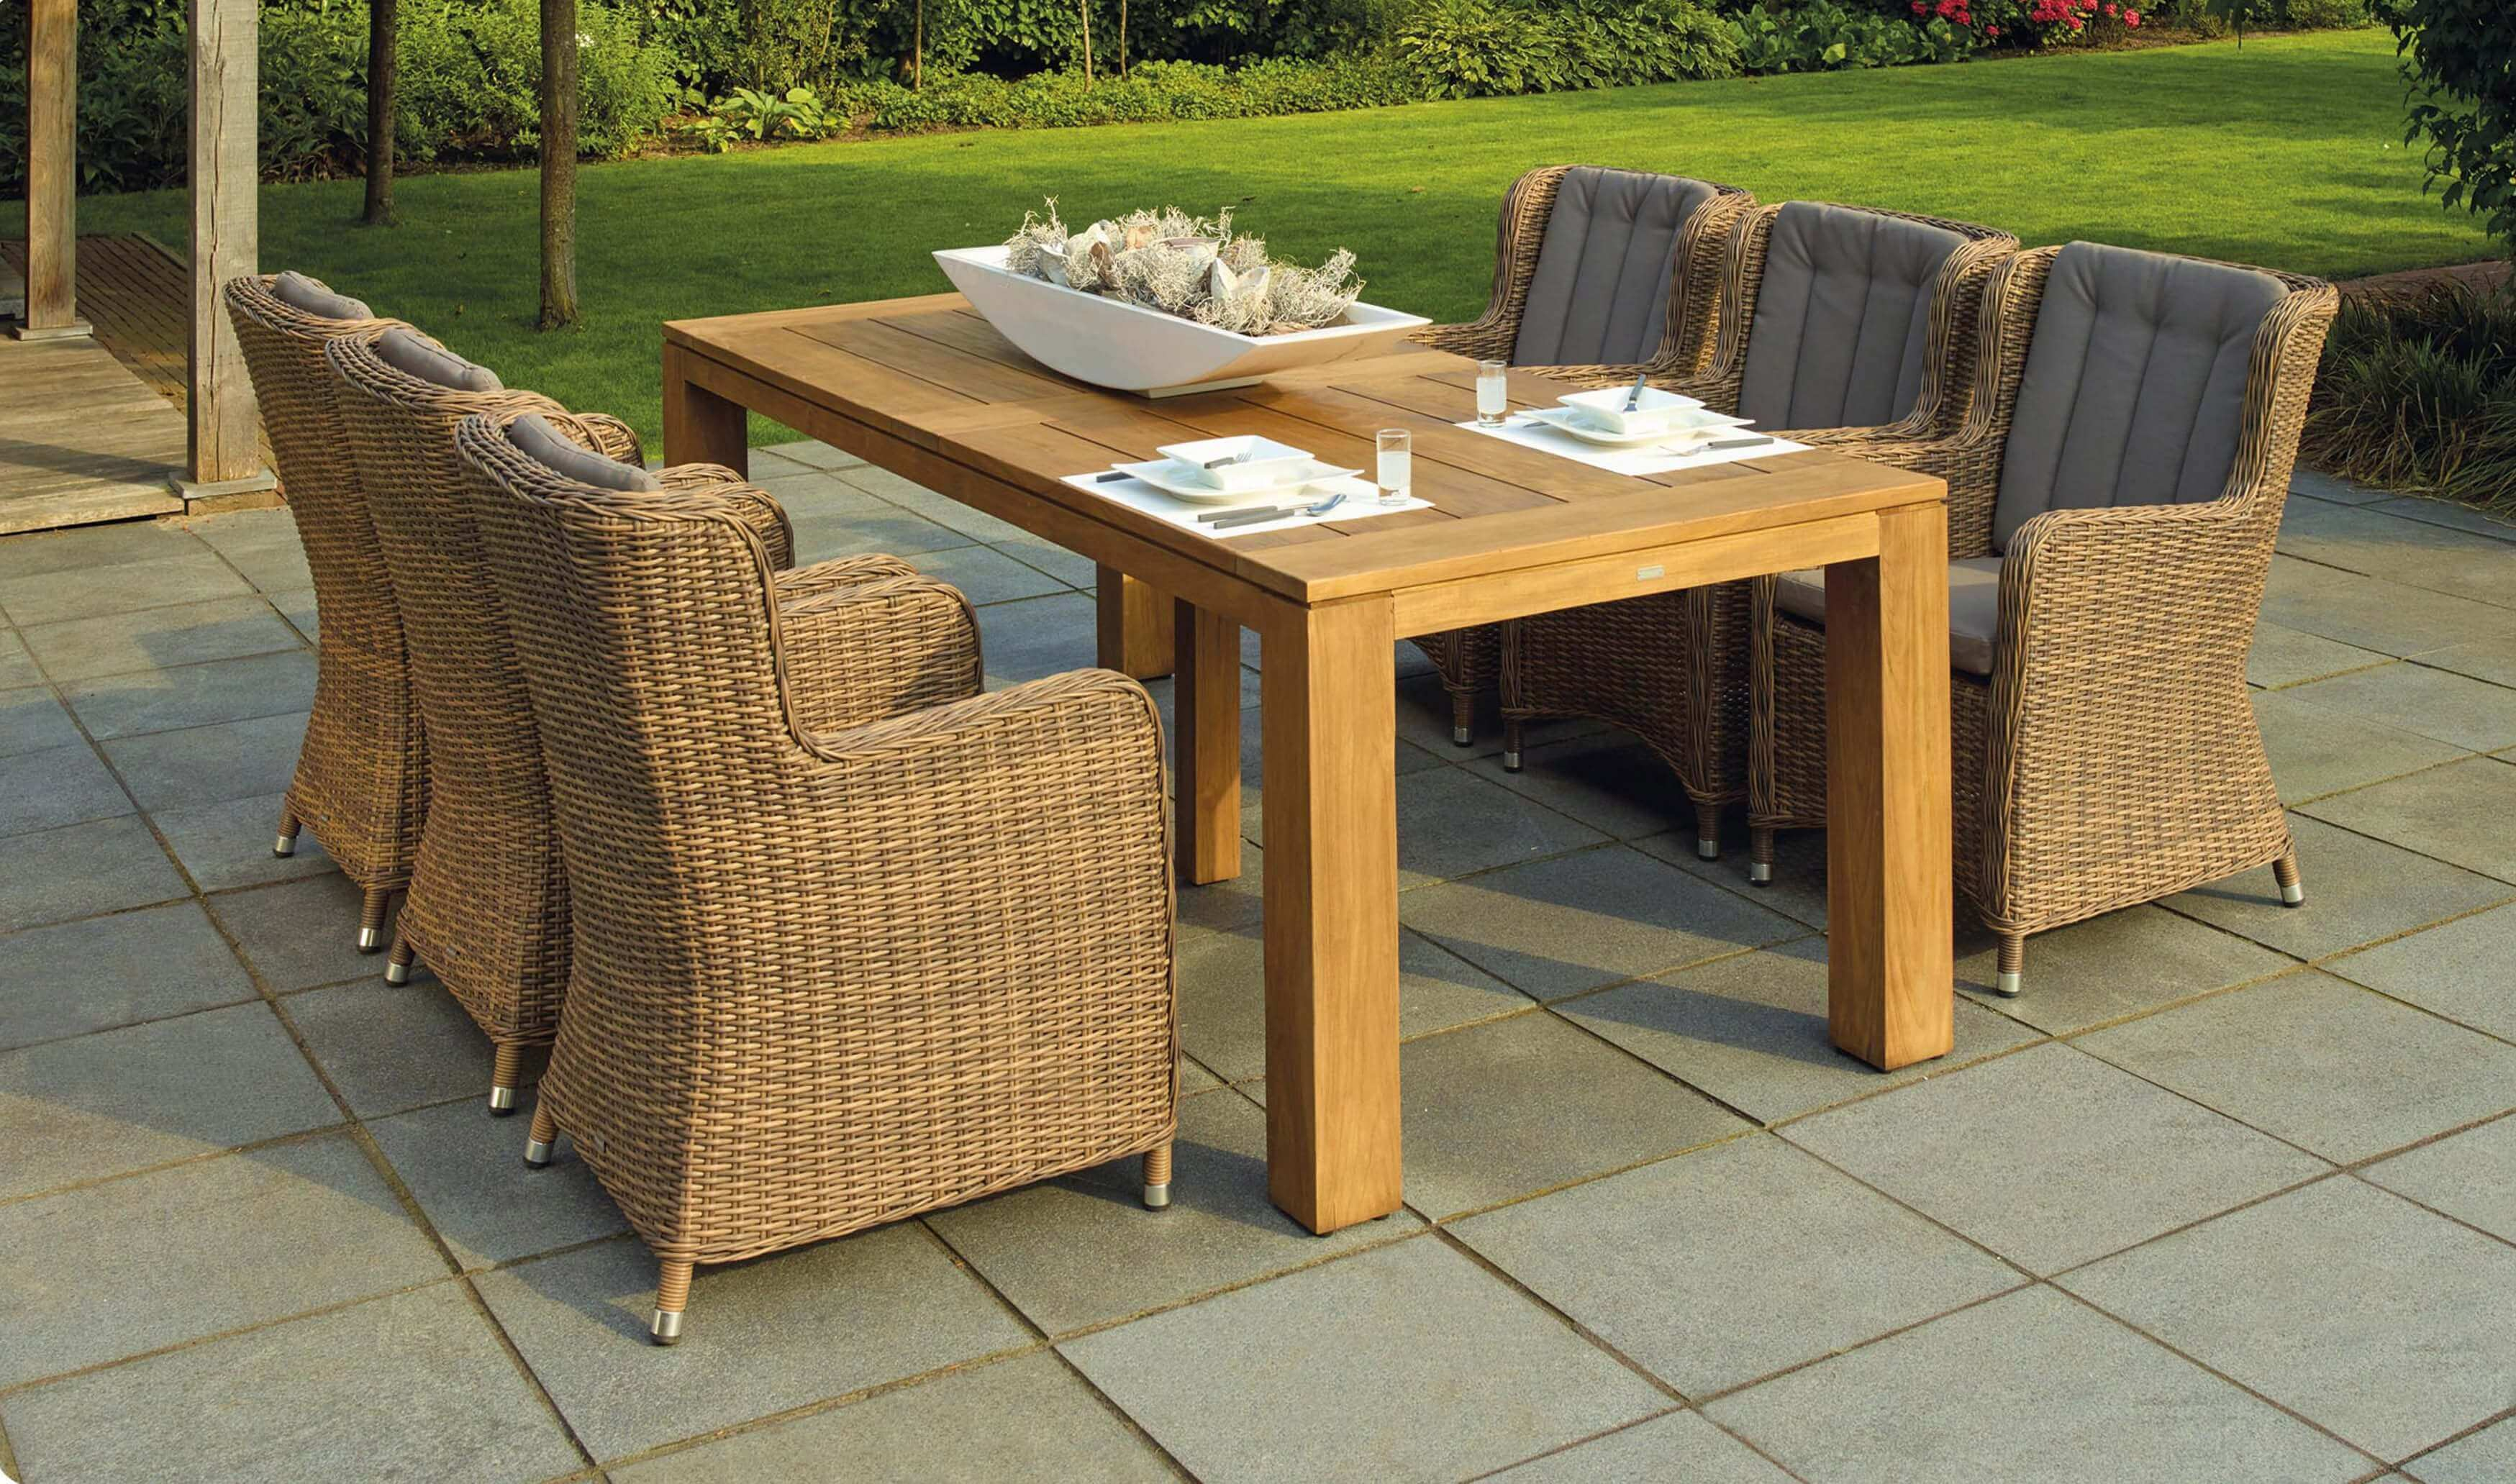 garden dining set in natural colours